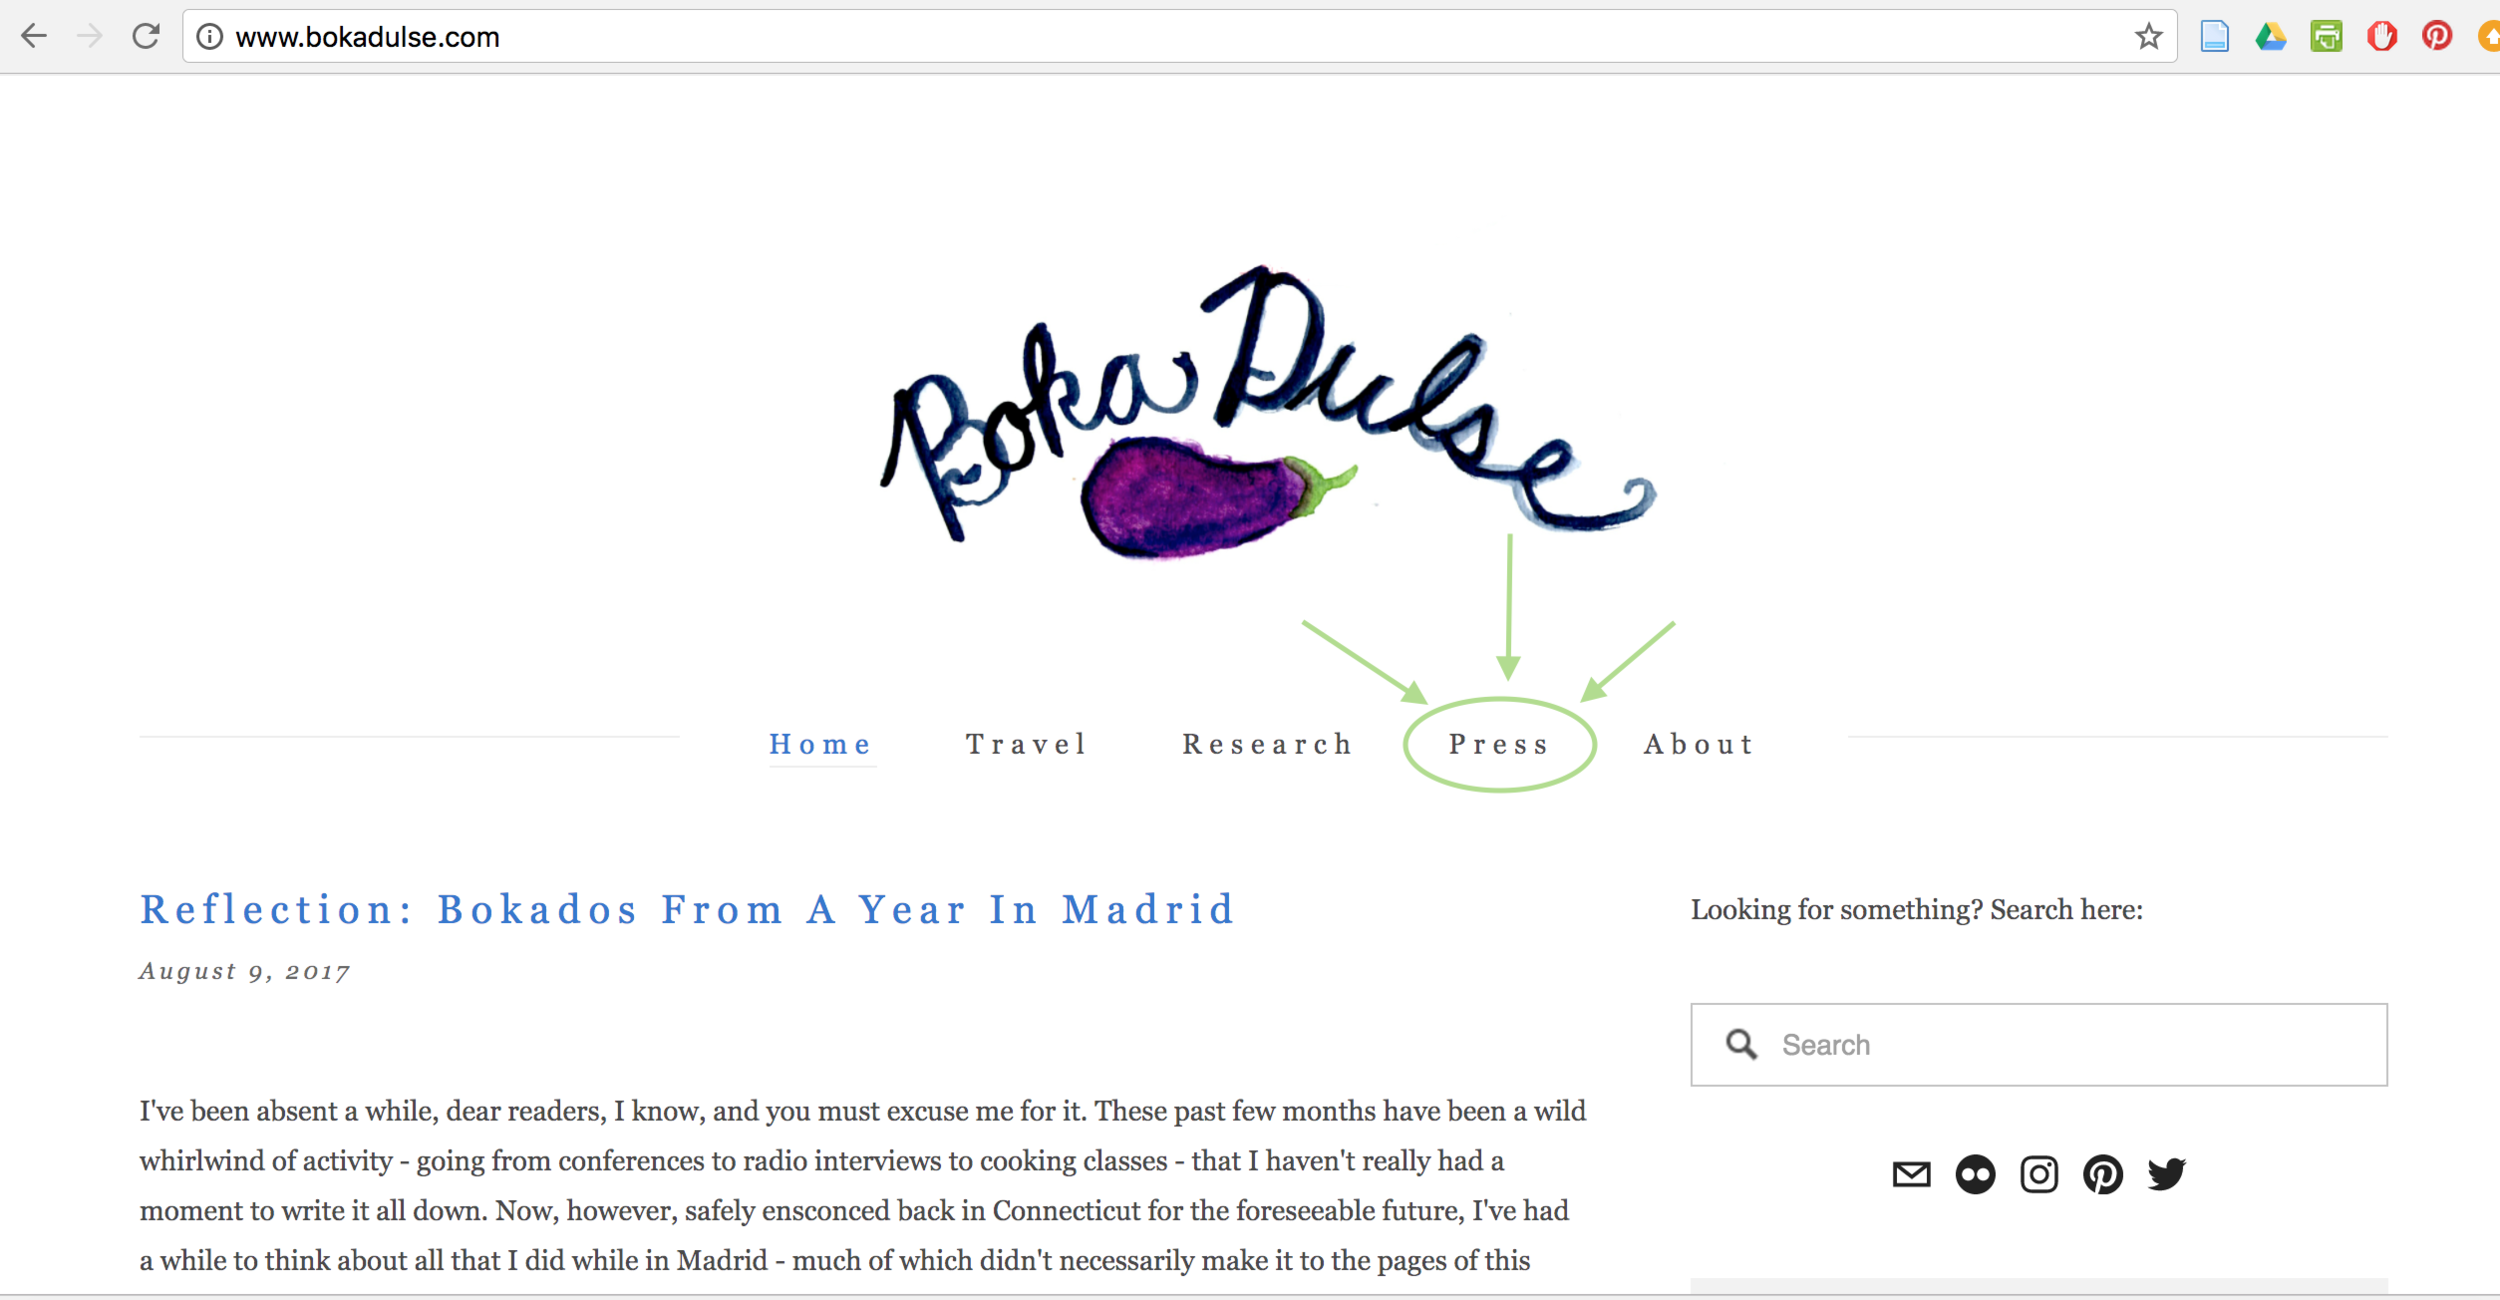 Now you can easily see all the places where Sara is spreading the Boka Dulse love!